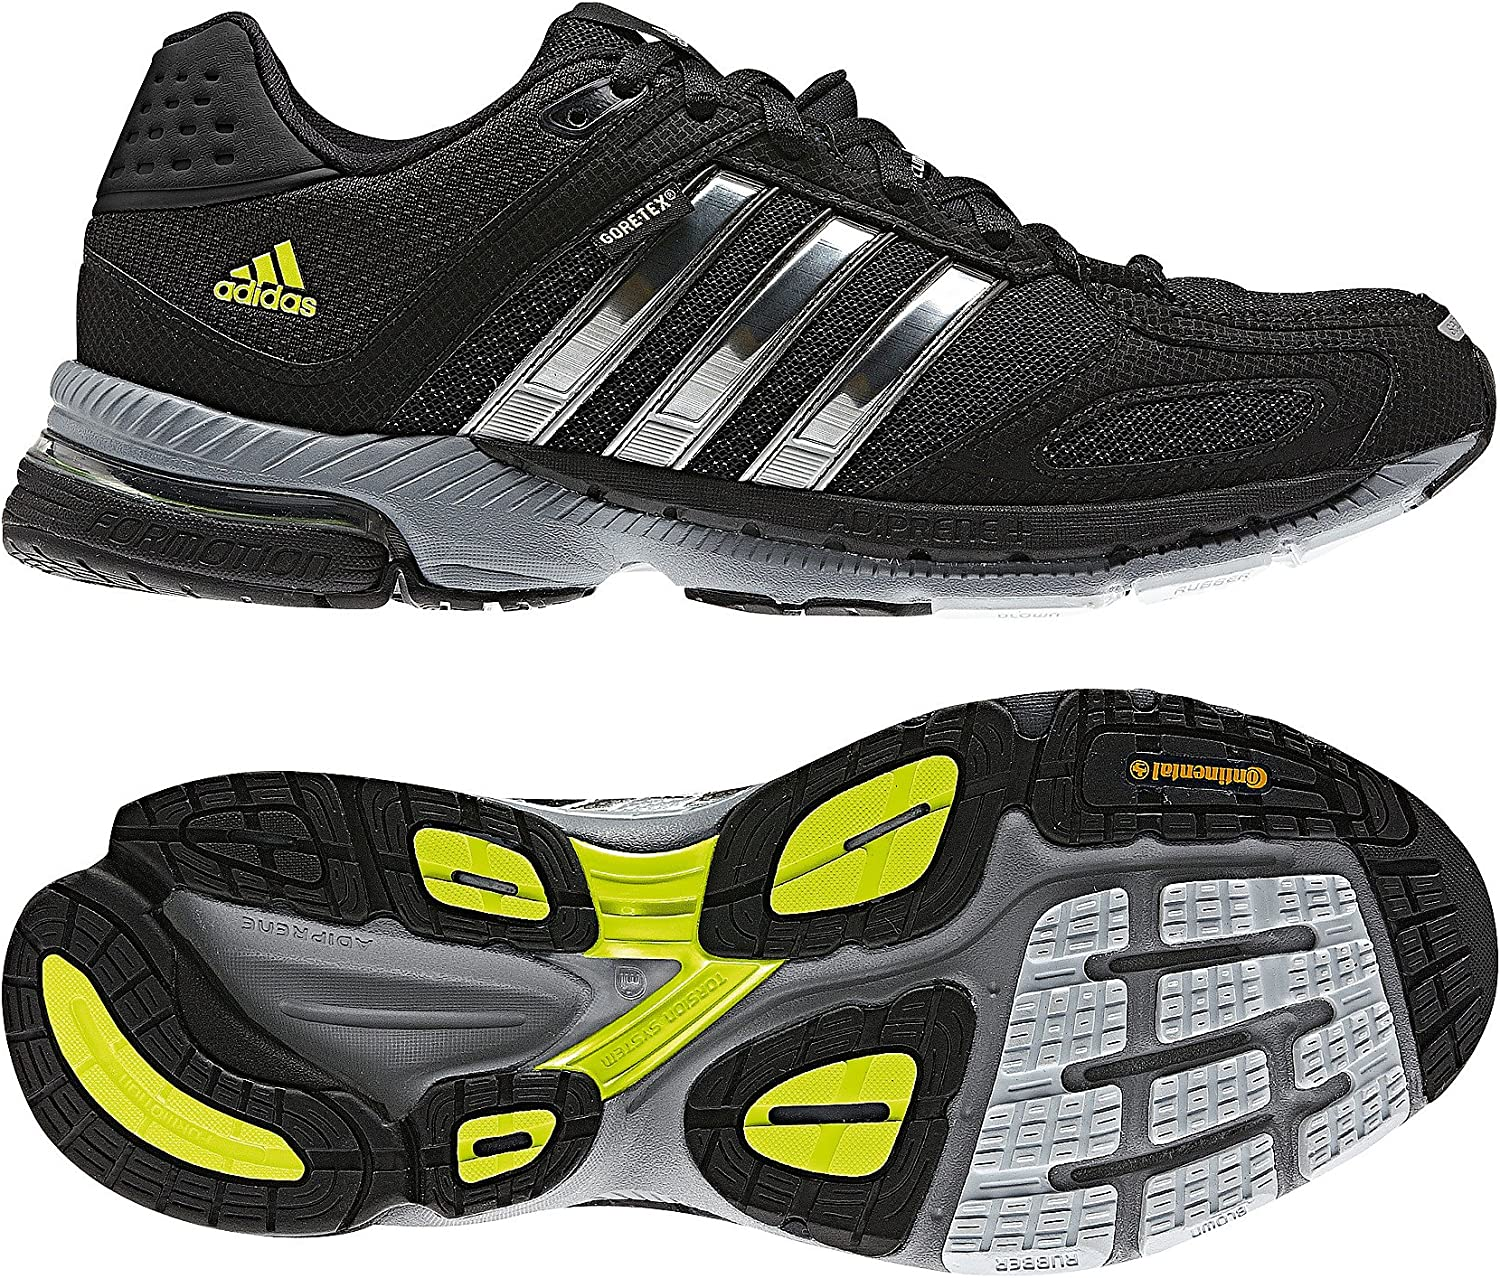 adidas Supernova Sequence 5 W GTX, Taille UE 42 23: Amazon